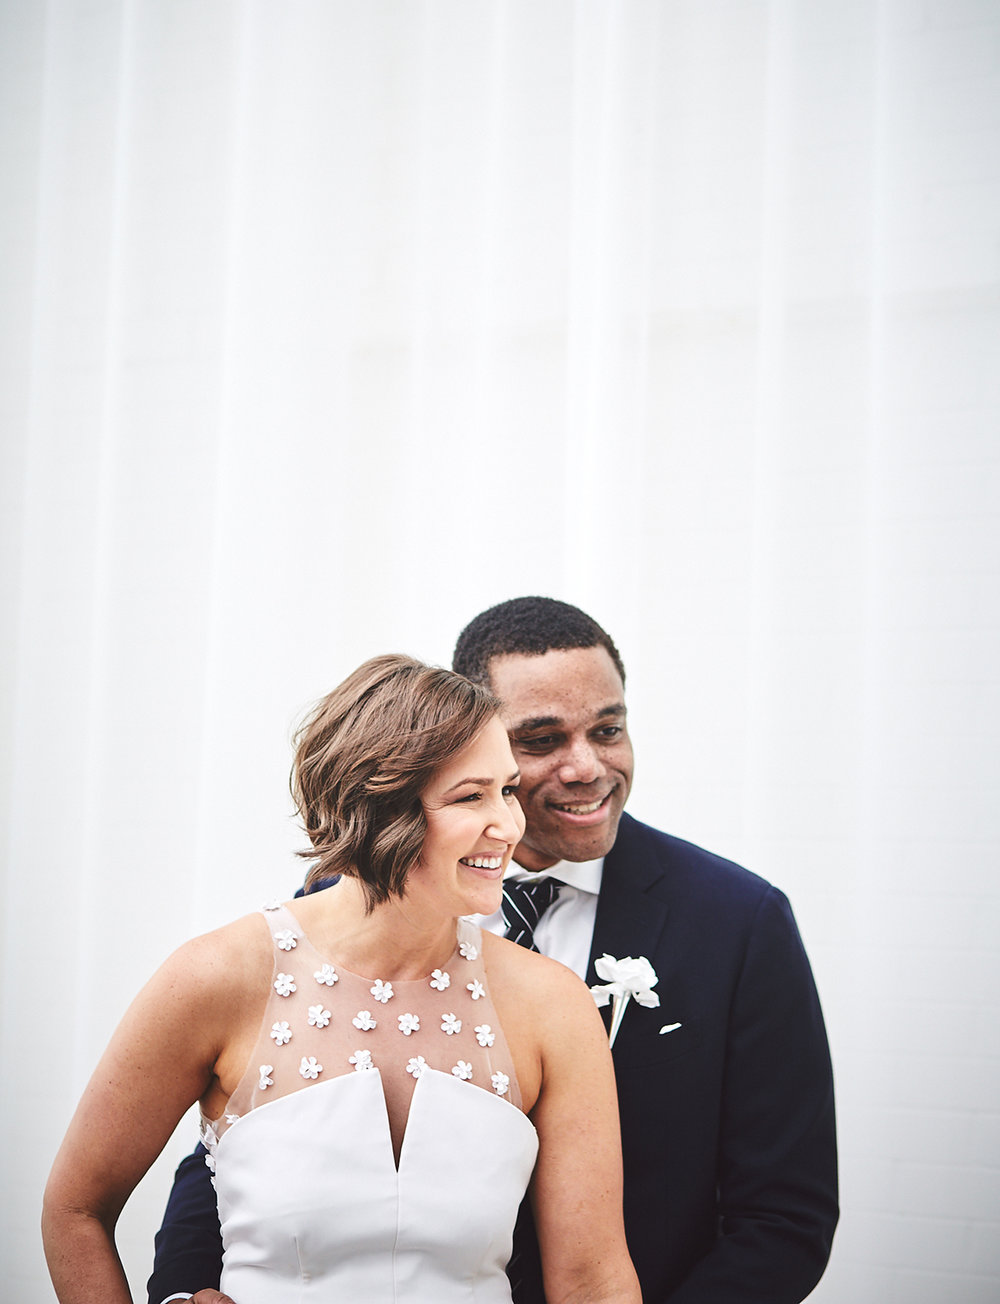 180518_AsburyHotel&PortaWeddingPhotography_NJWeddingPhotographer_By_BriJohnsonWeddings_0051.jpg